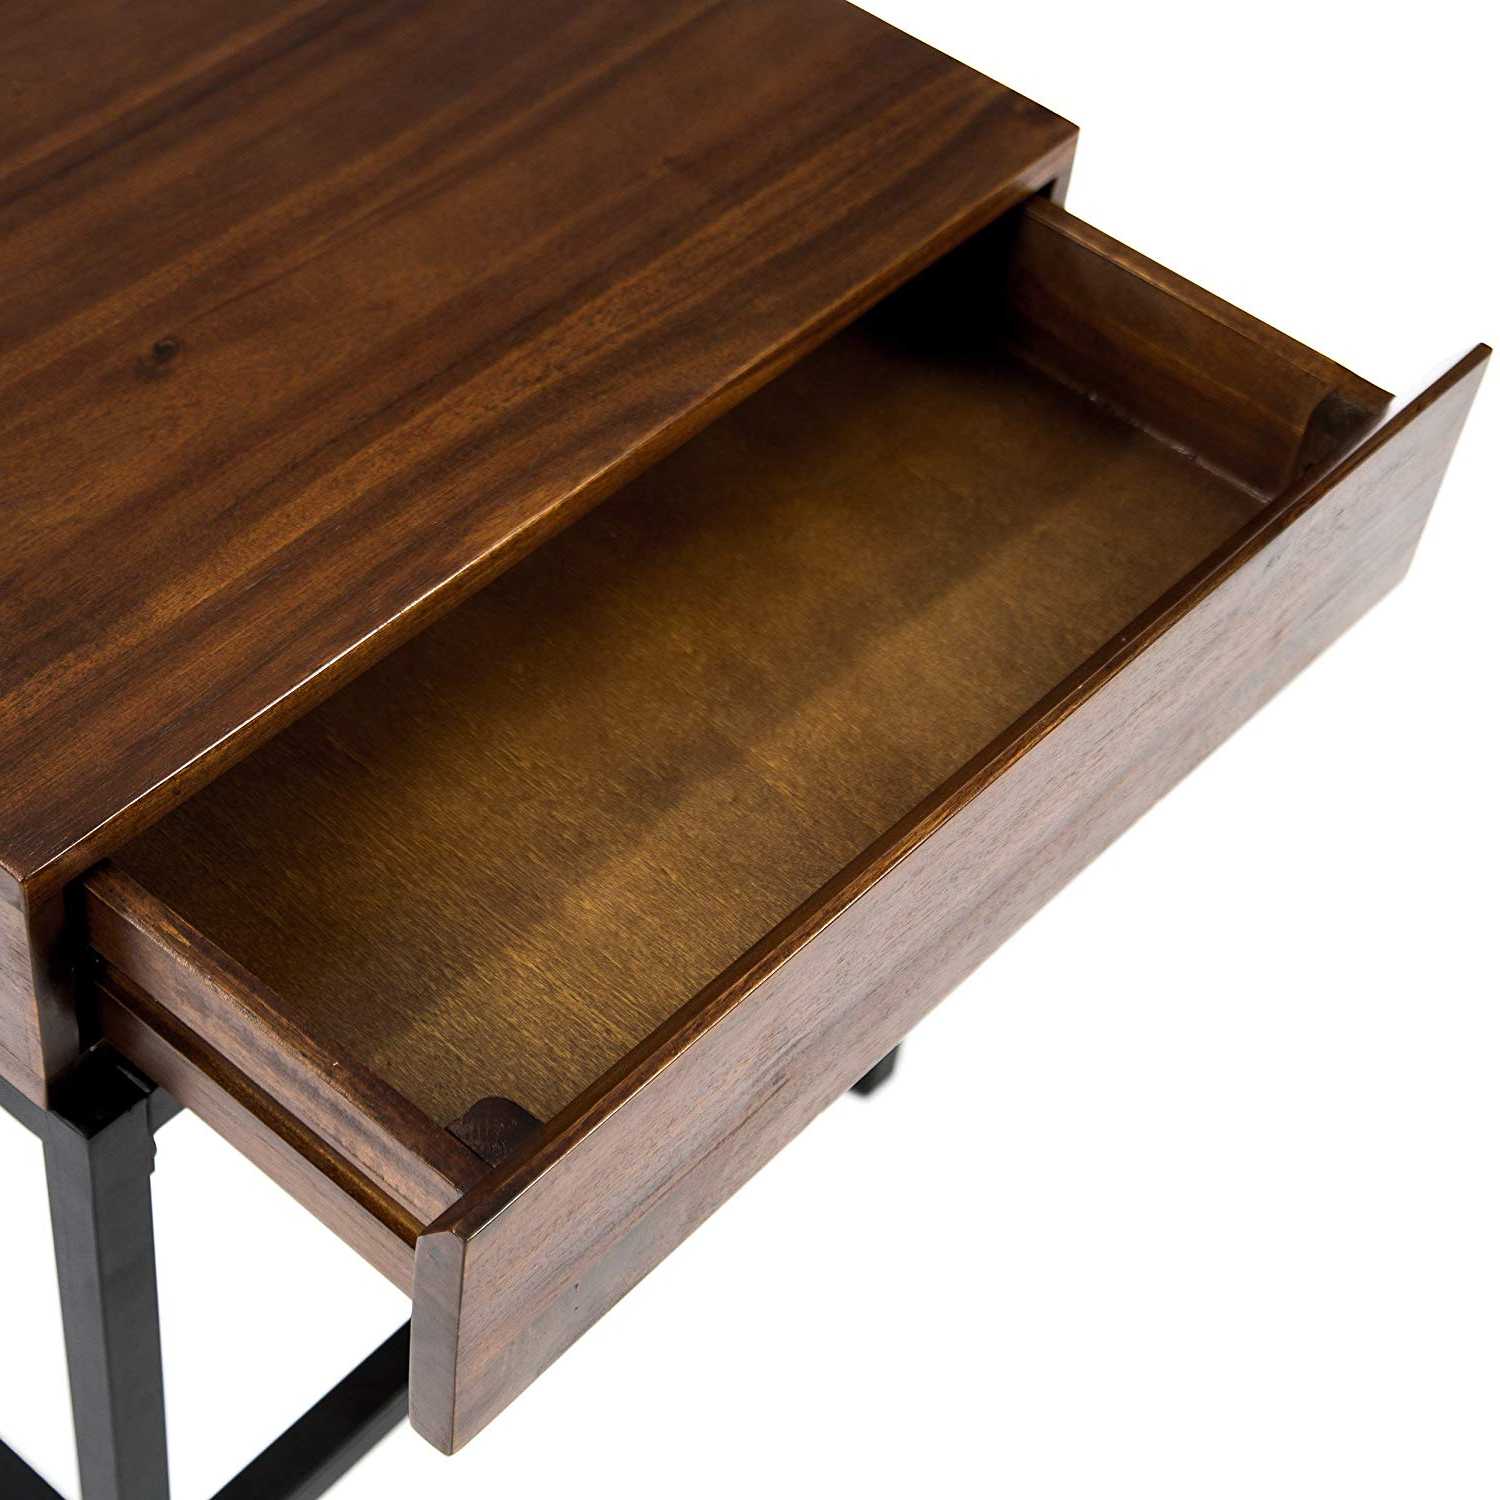 Most Recent Cheap Acacia Wood Price, Find Acacia Wood Price Deals On In Acacia Wood Medley Medium Dining Tables With Metal Base (View 24 of 26)